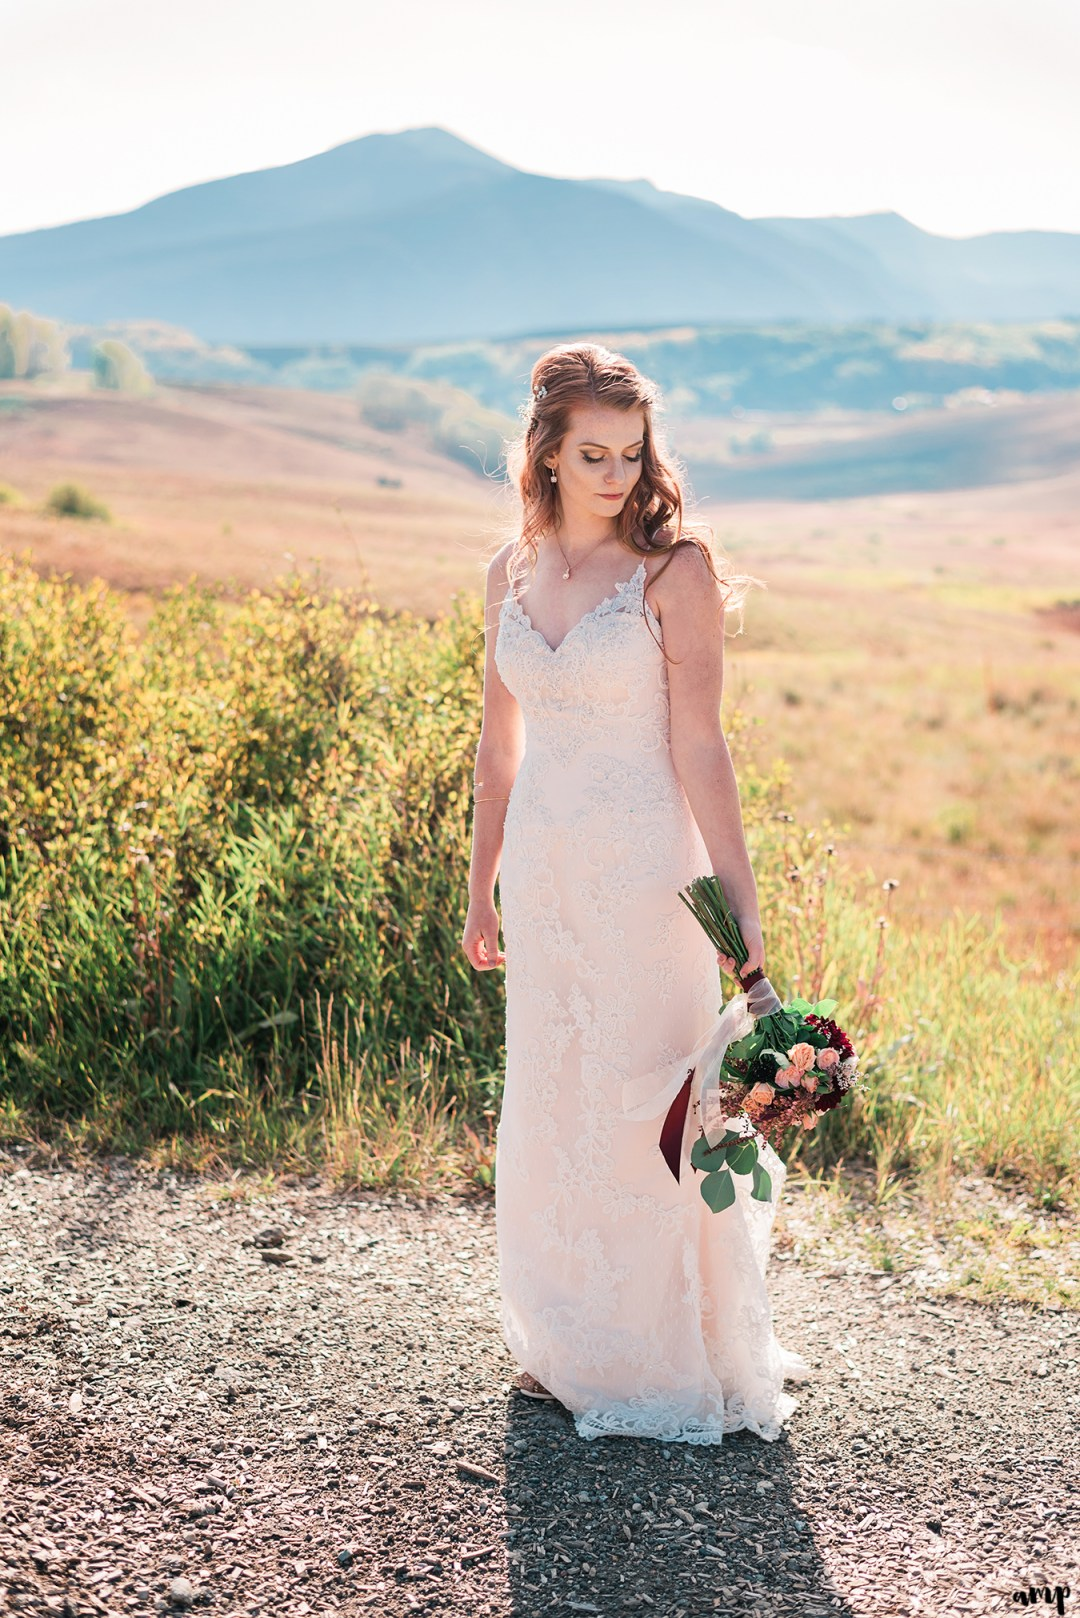 Bride gazing at her bouquet among the fall colors with mountains in the background